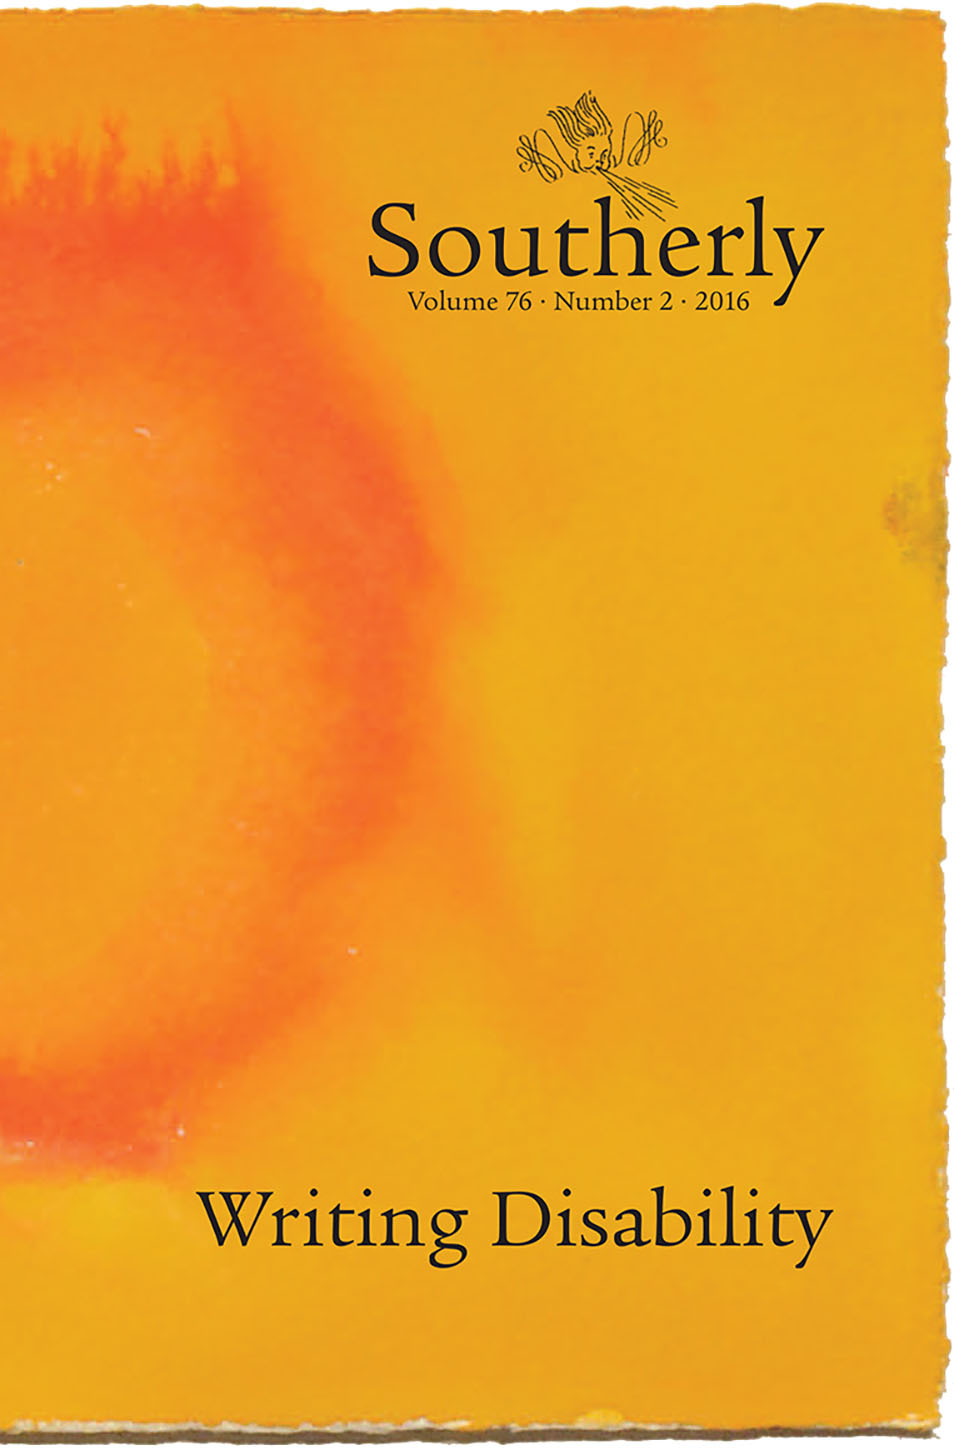 southerly writing disability newsouth books this intriguing issue presents essays memoir and creative work by disabled and non disabled writers on the subjects of disability and of the interrelation